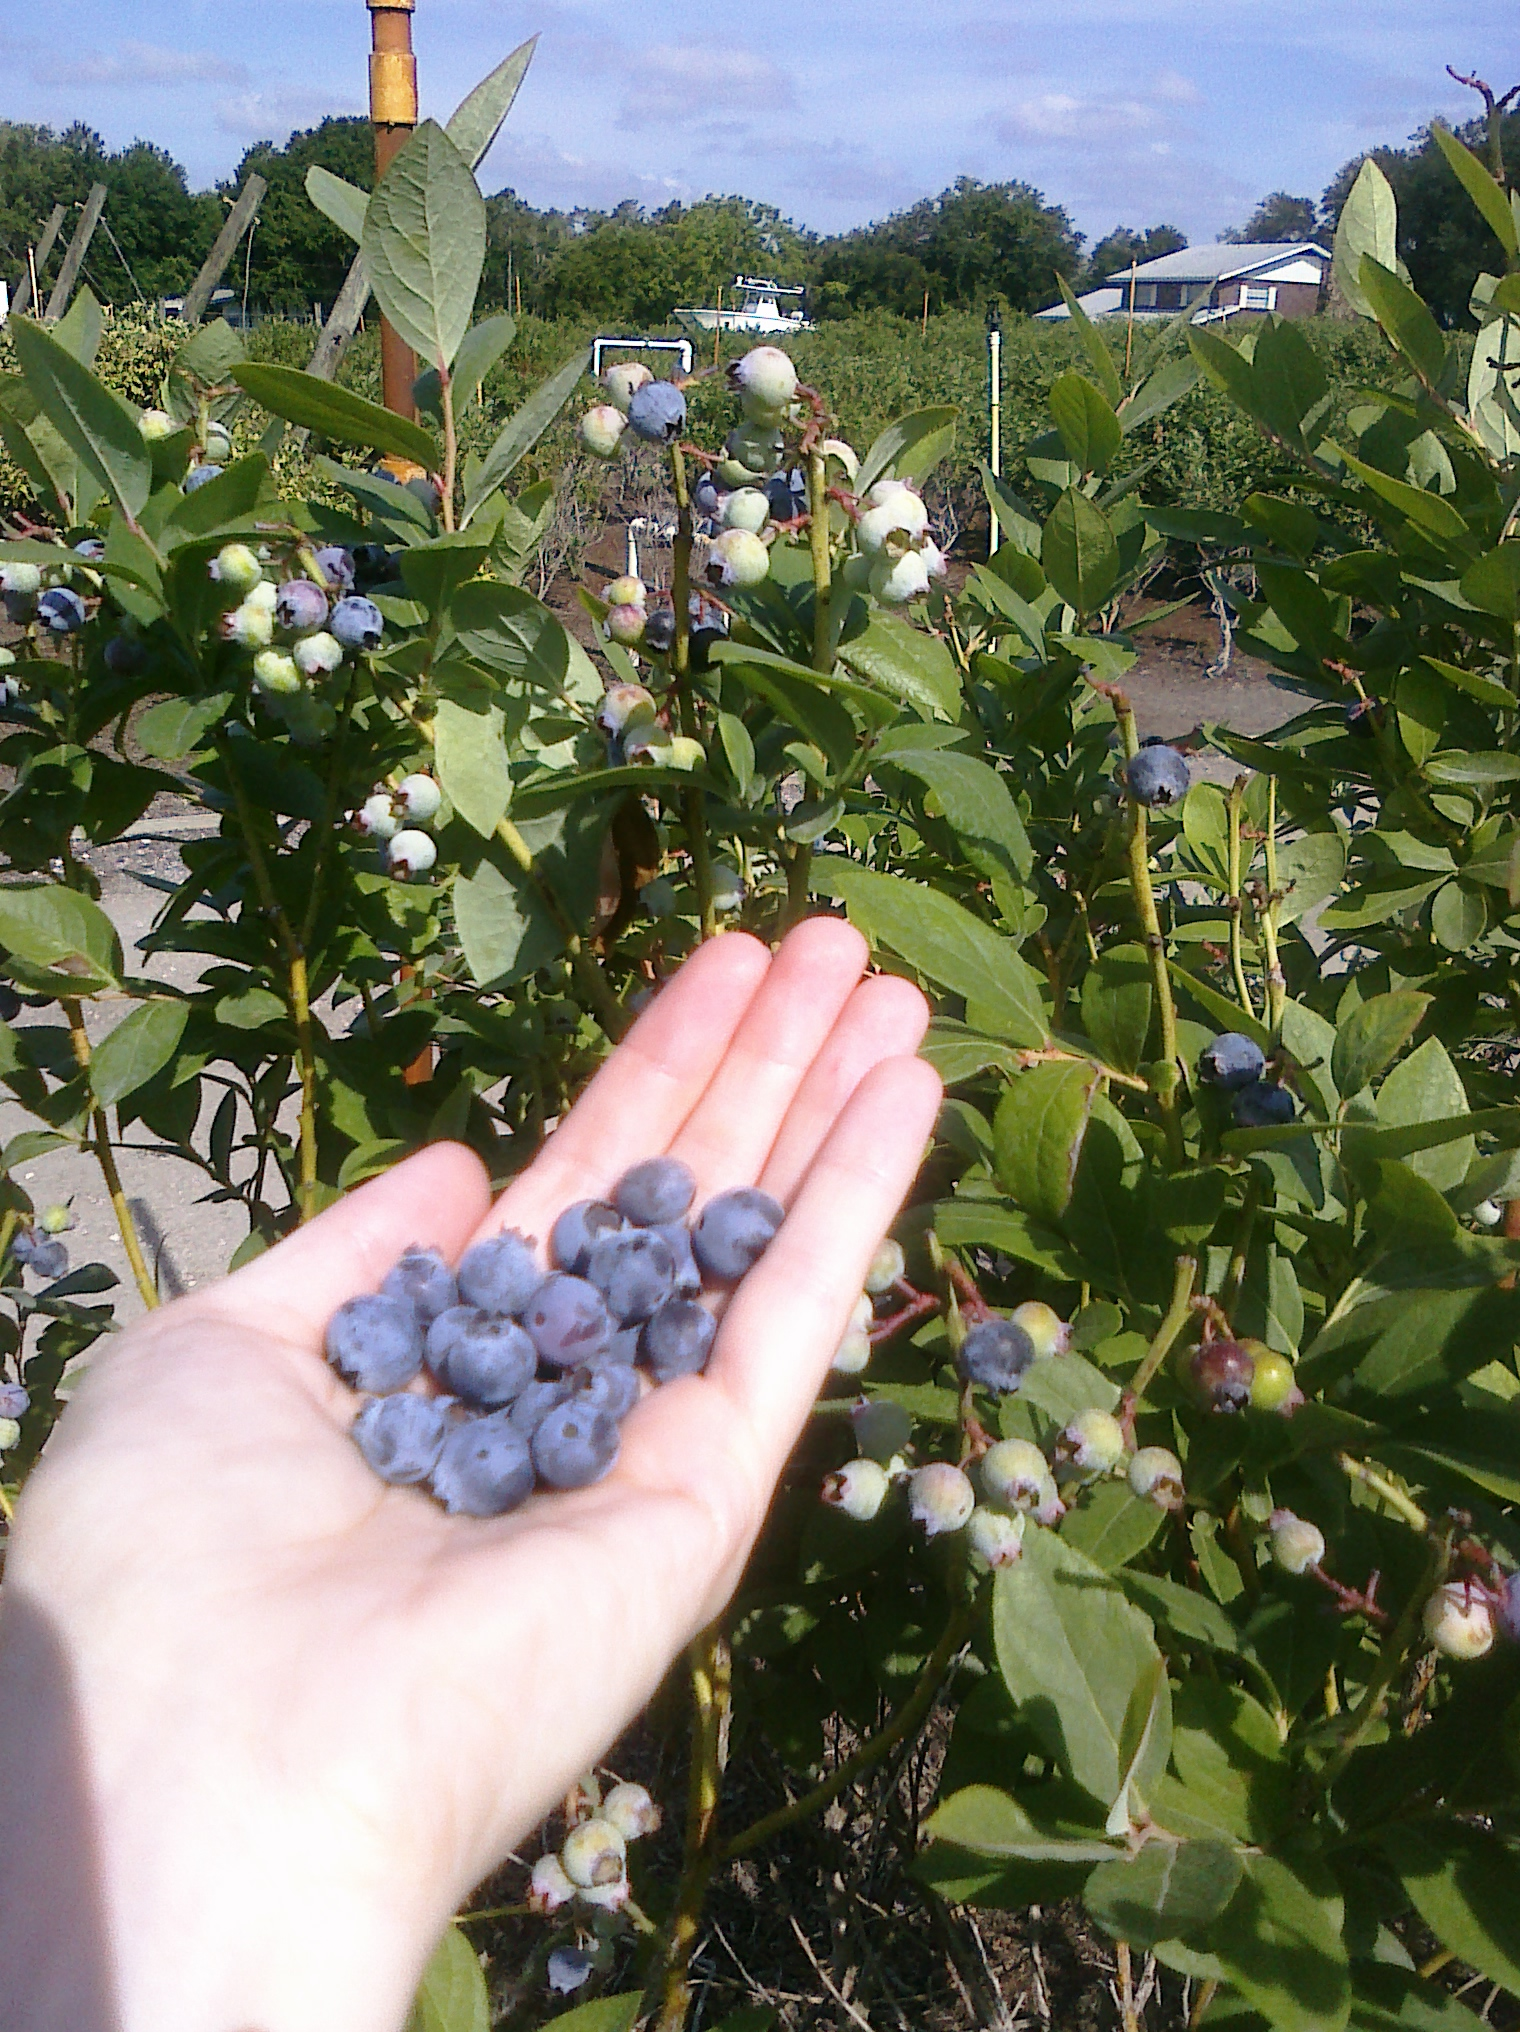 mmm... blueberries!